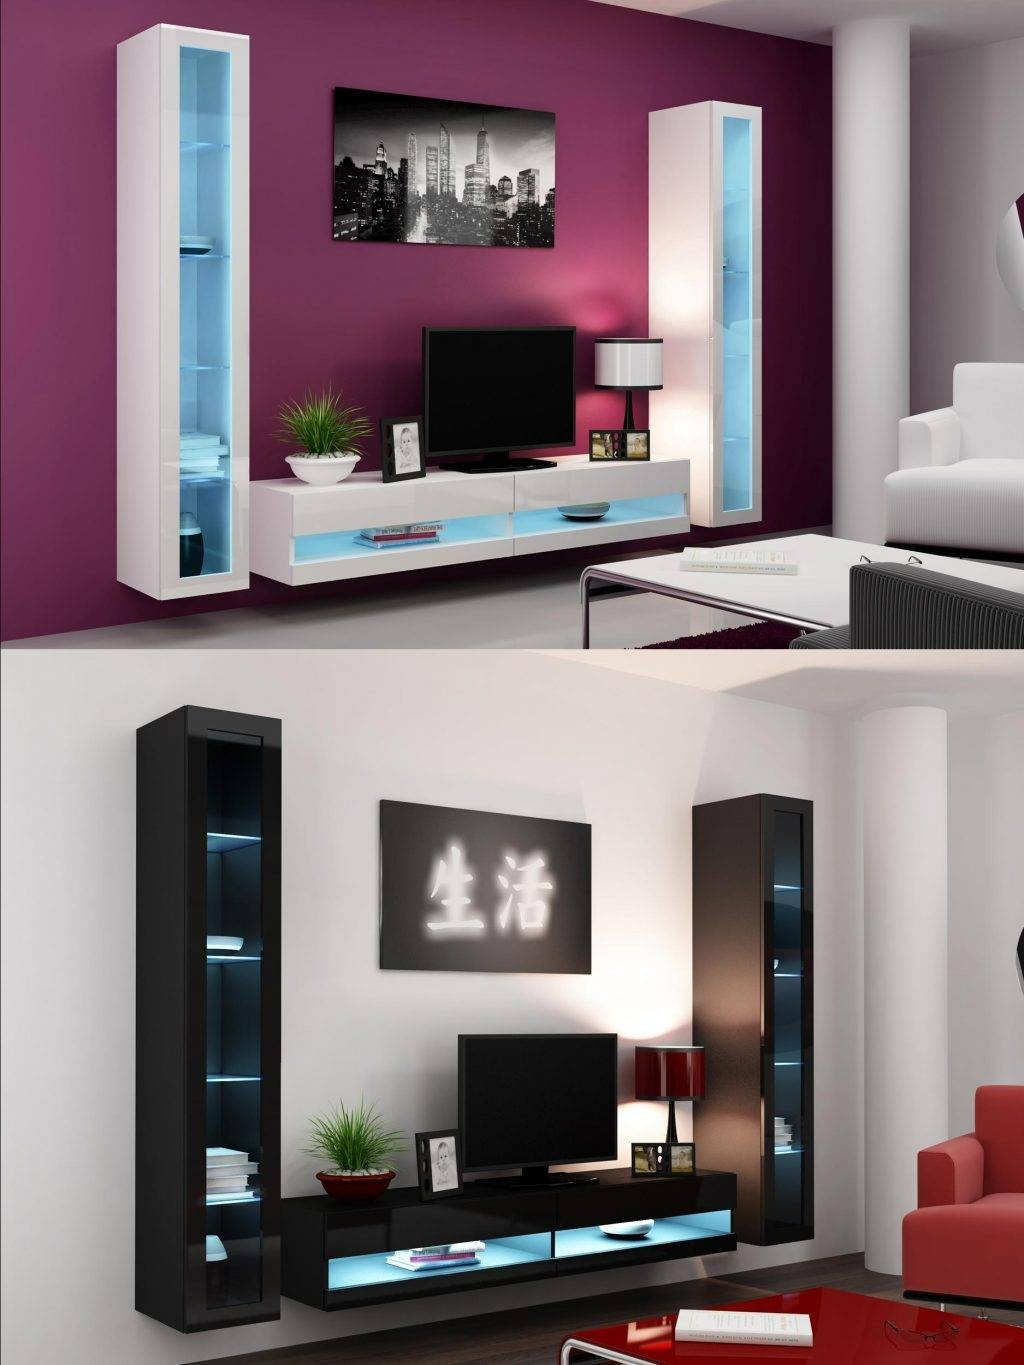 Living ~ Vigo Cama Sets Wall Units 2 Tv Units Mixed Marvelous Wall pertaining to On The Wall Tv Units (Image 6 of 15)